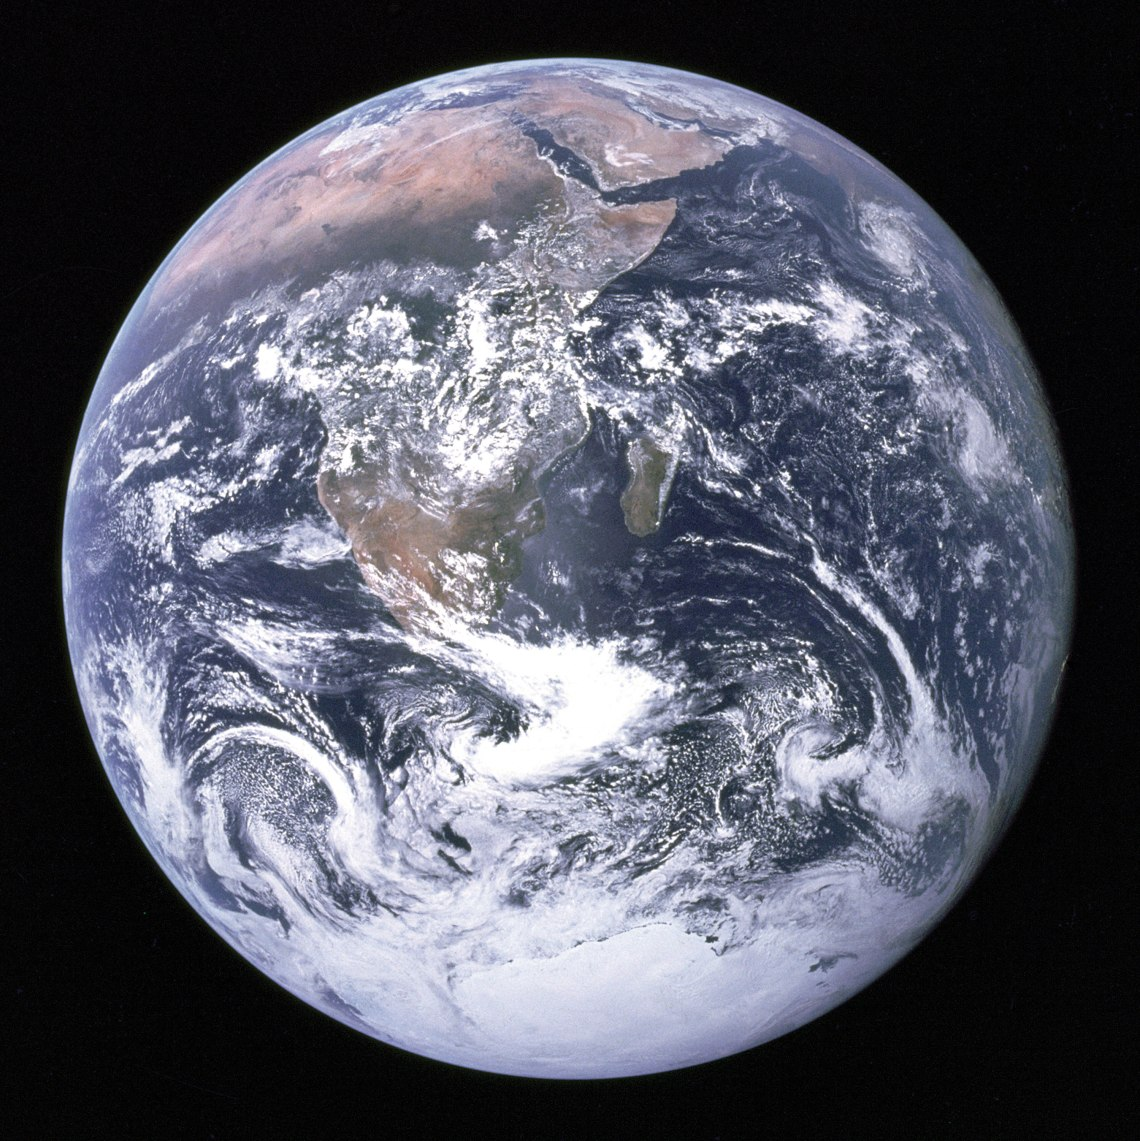 View of the Earth as seen by the Apollo 17 crew traveling toward the moon. This translunar coast photograph extends from the Meditierranean Sea to Antarctica. Credit: NASA